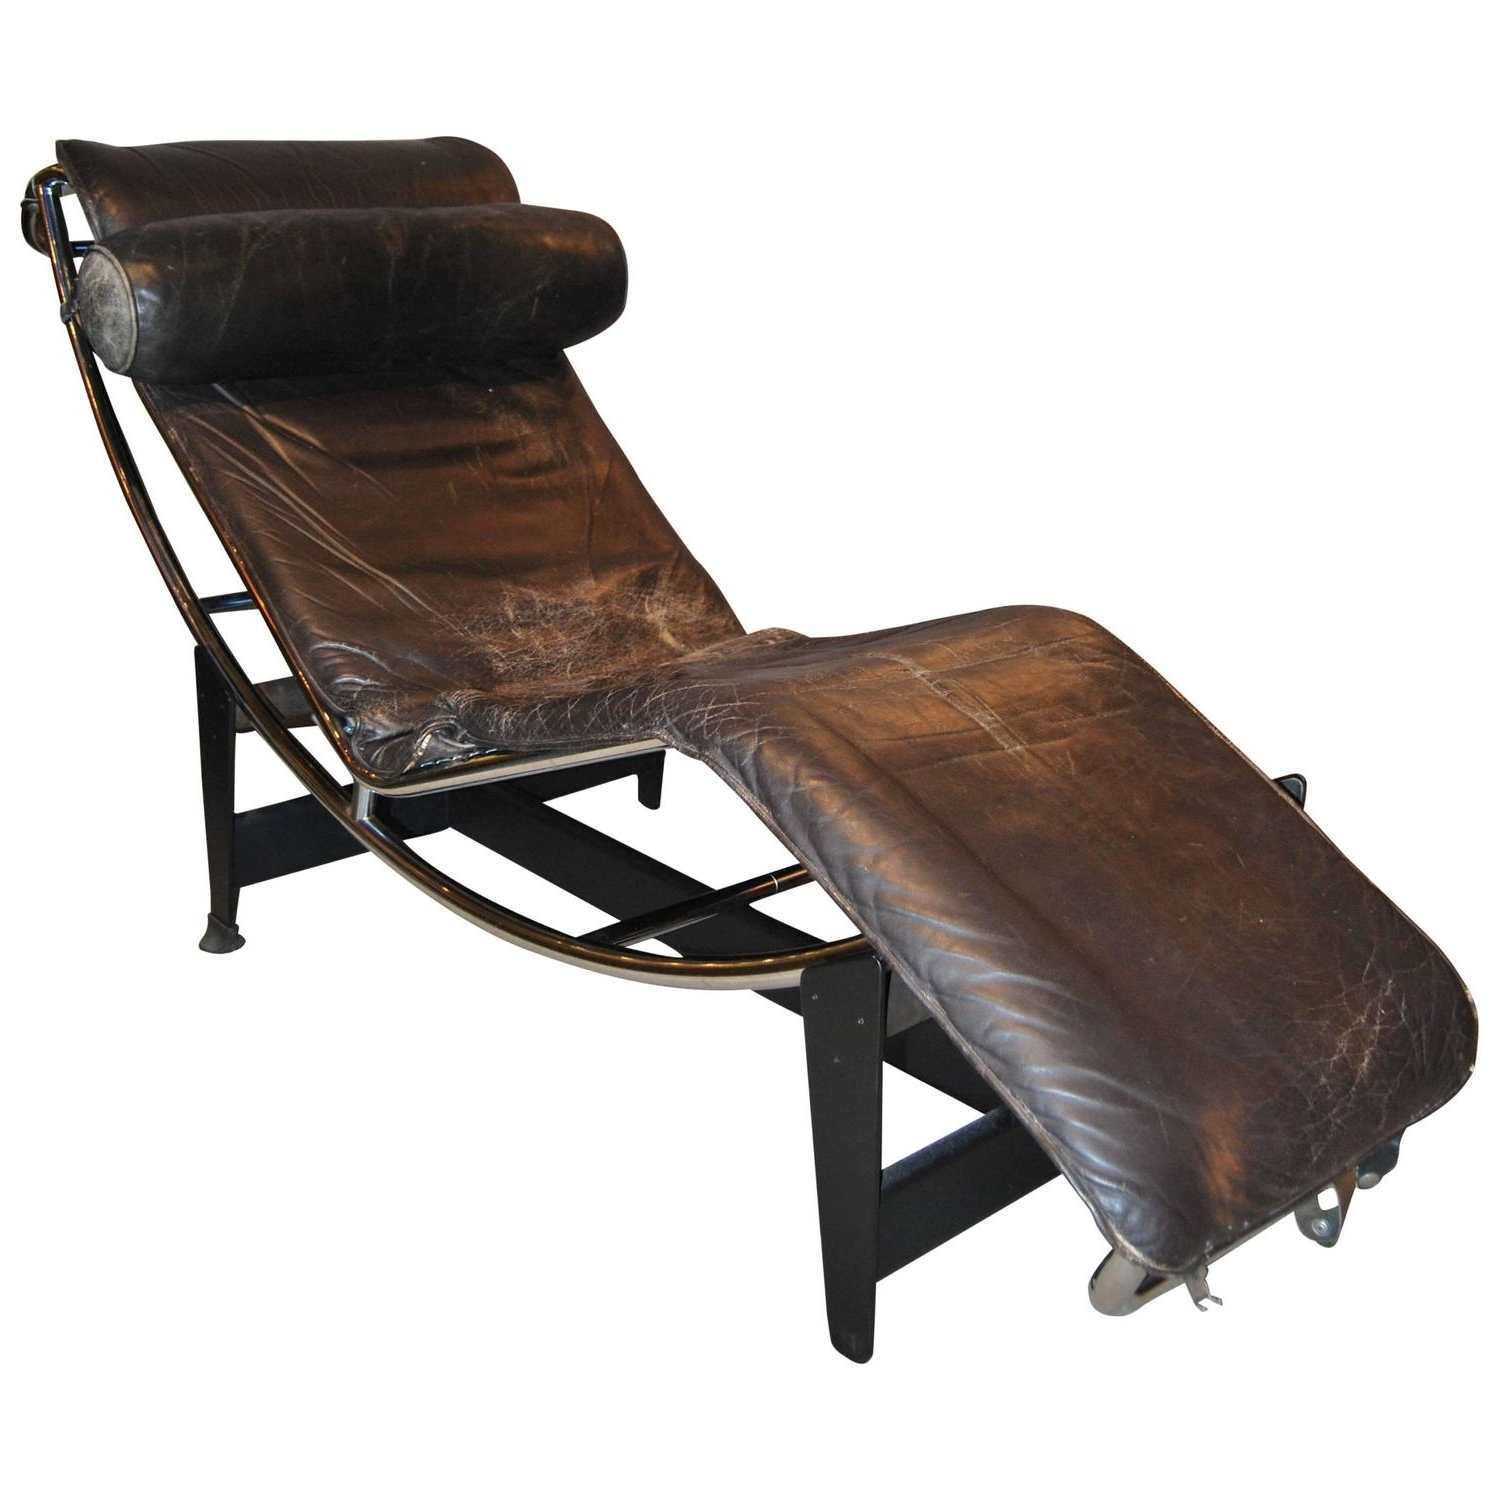 Early Le Corbusier/jeanneret/perriand Lc4 Chaise Lounge For Sale Inside Favorite Le Corbusier Chaises (View 6 of 15)